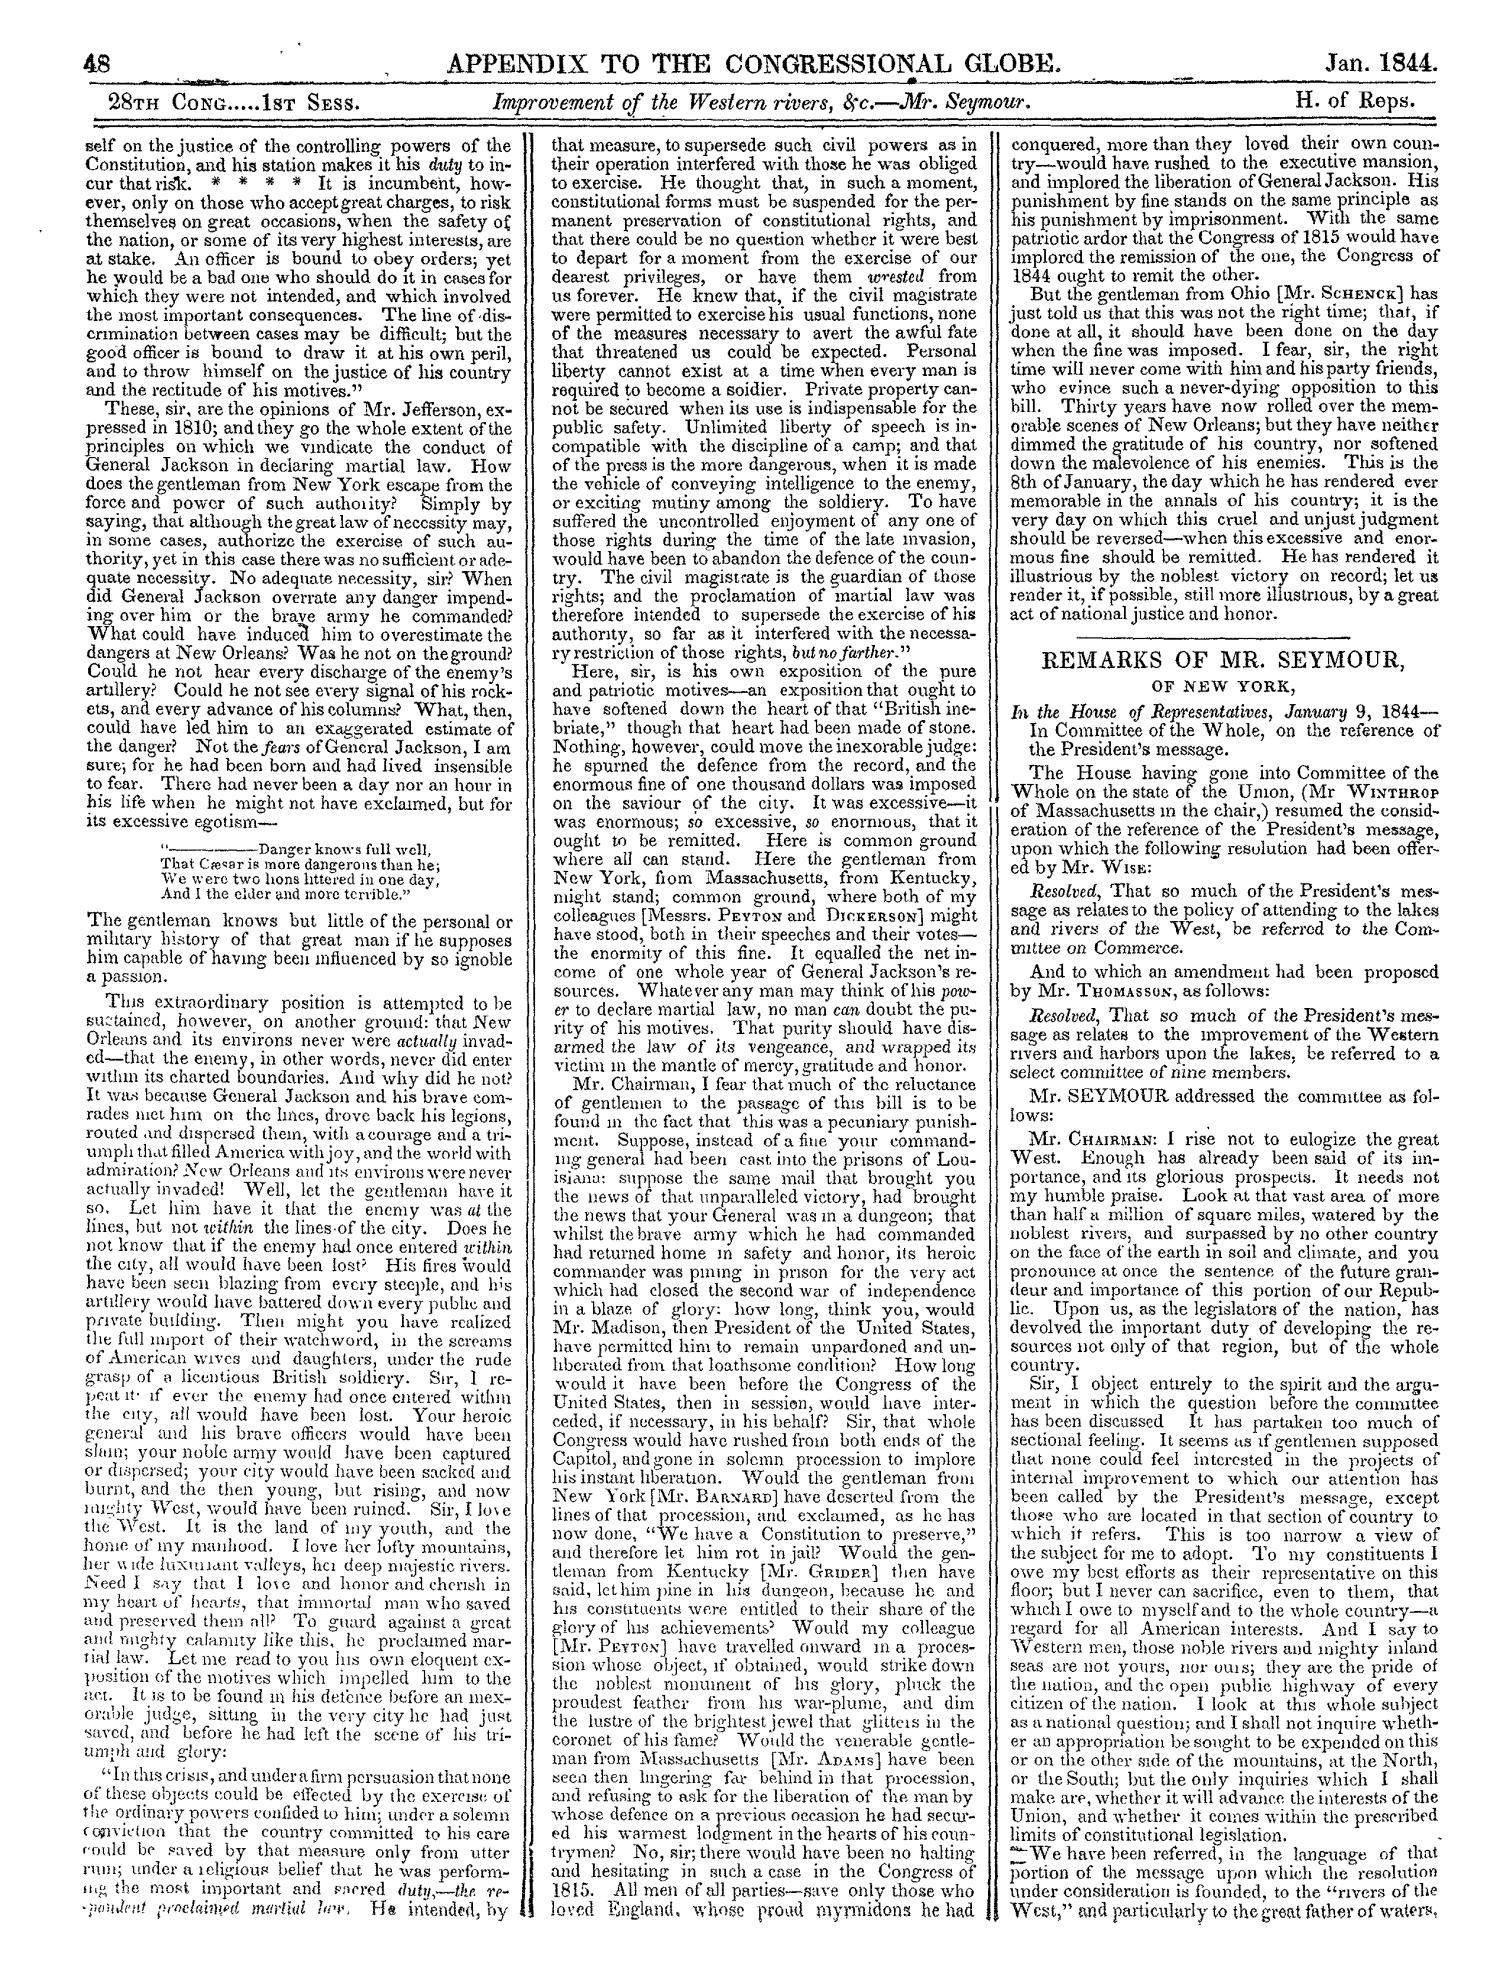 The Congressional Globe, Volume 13, Part 2: Twenty-Eighth Congress, First Session                                                                                                      48